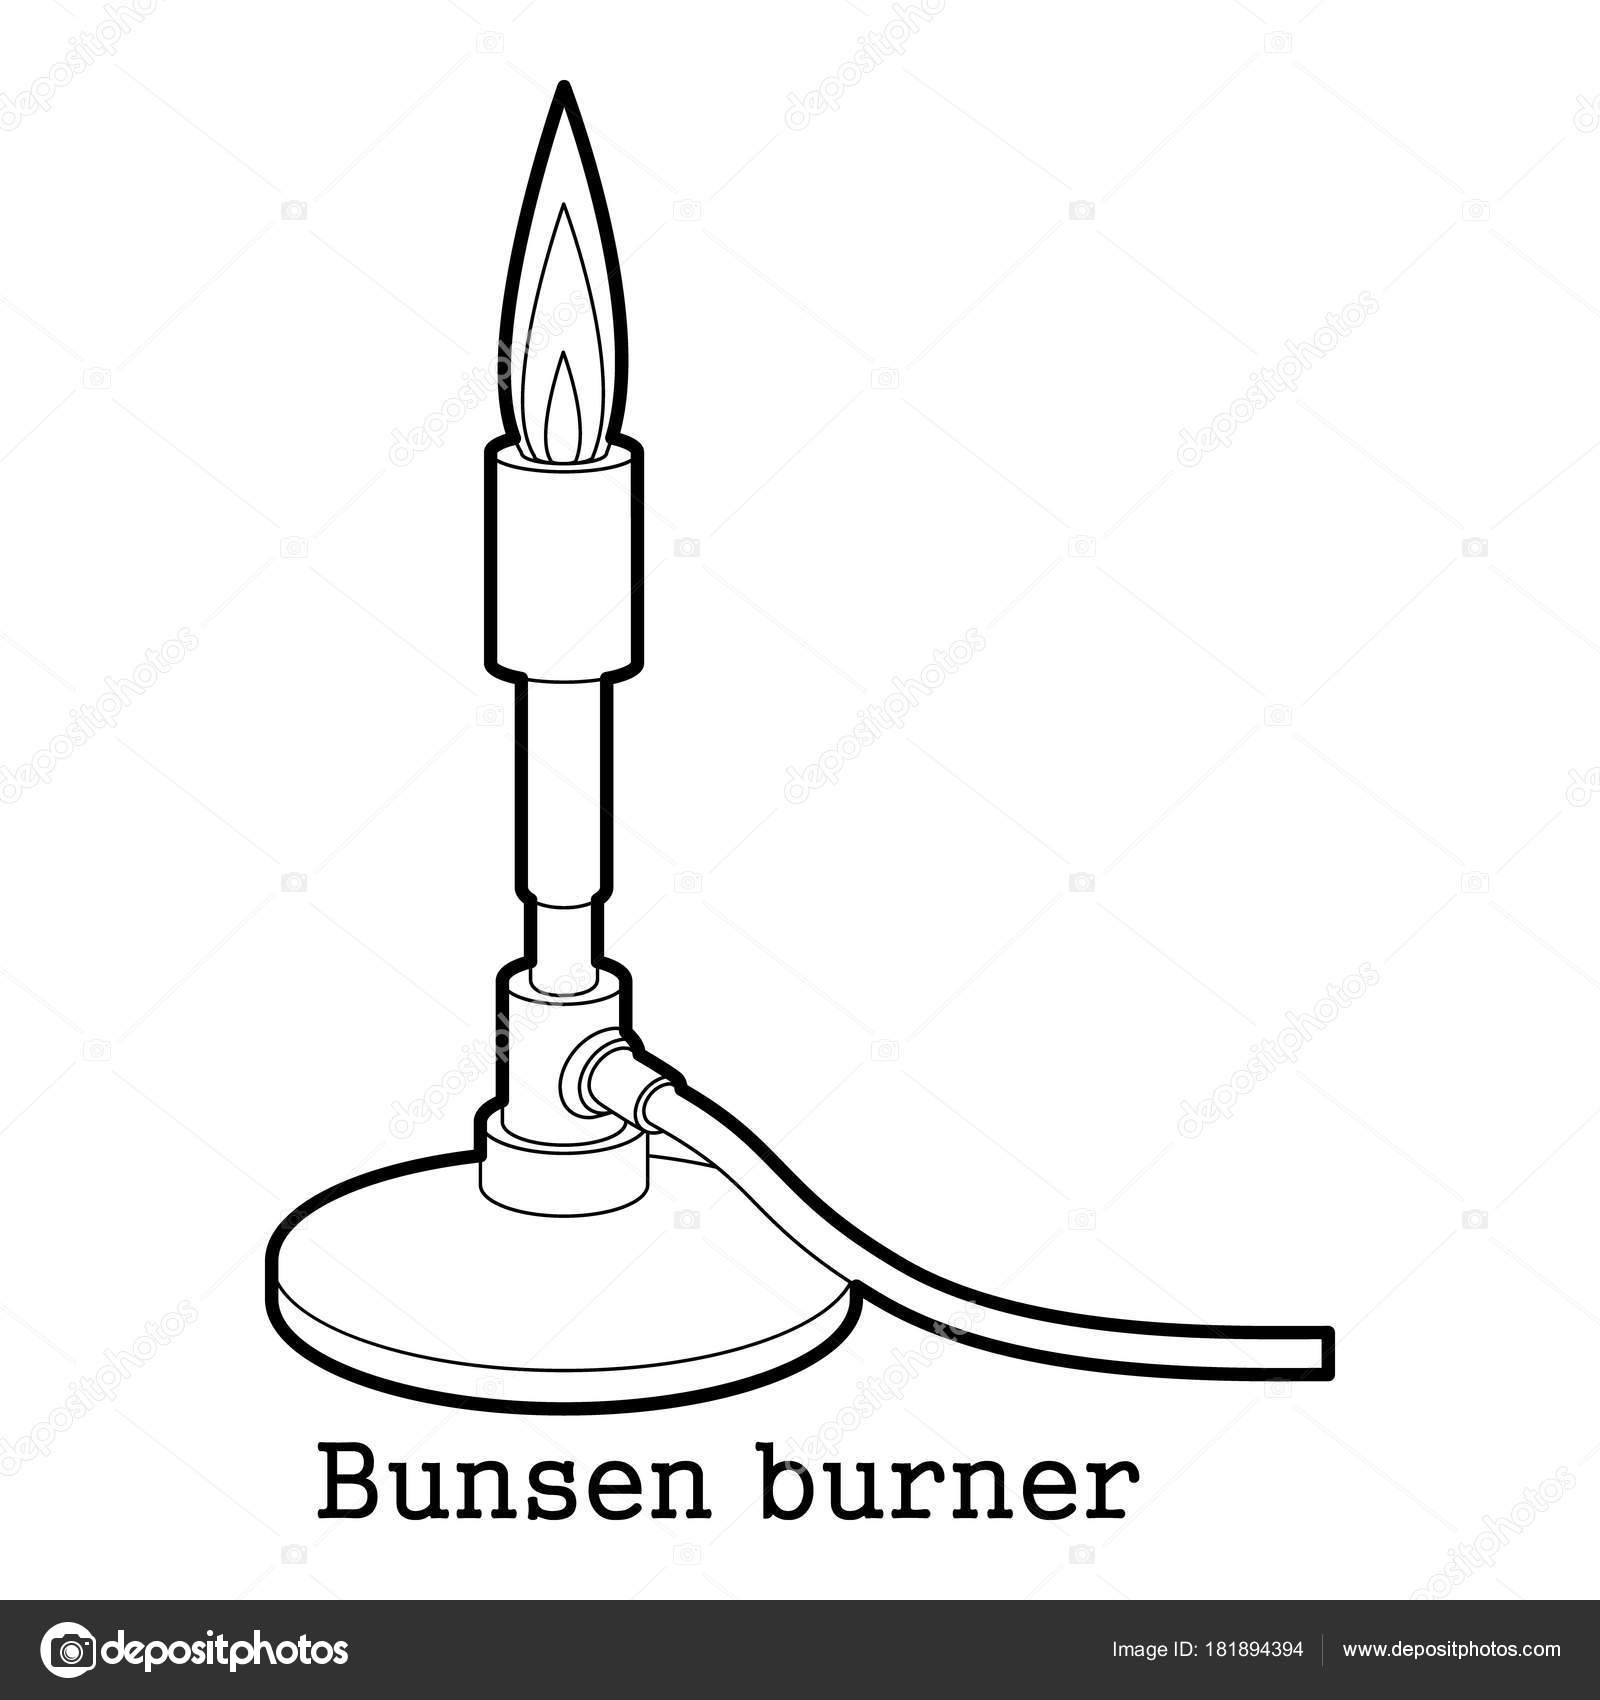 Bunsen burner icon outline stock vector ylivdesign 181894394 bunsen burner icon in outline style isolated on white background vector illustration vector by ylivdesign pooptronica Choice Image